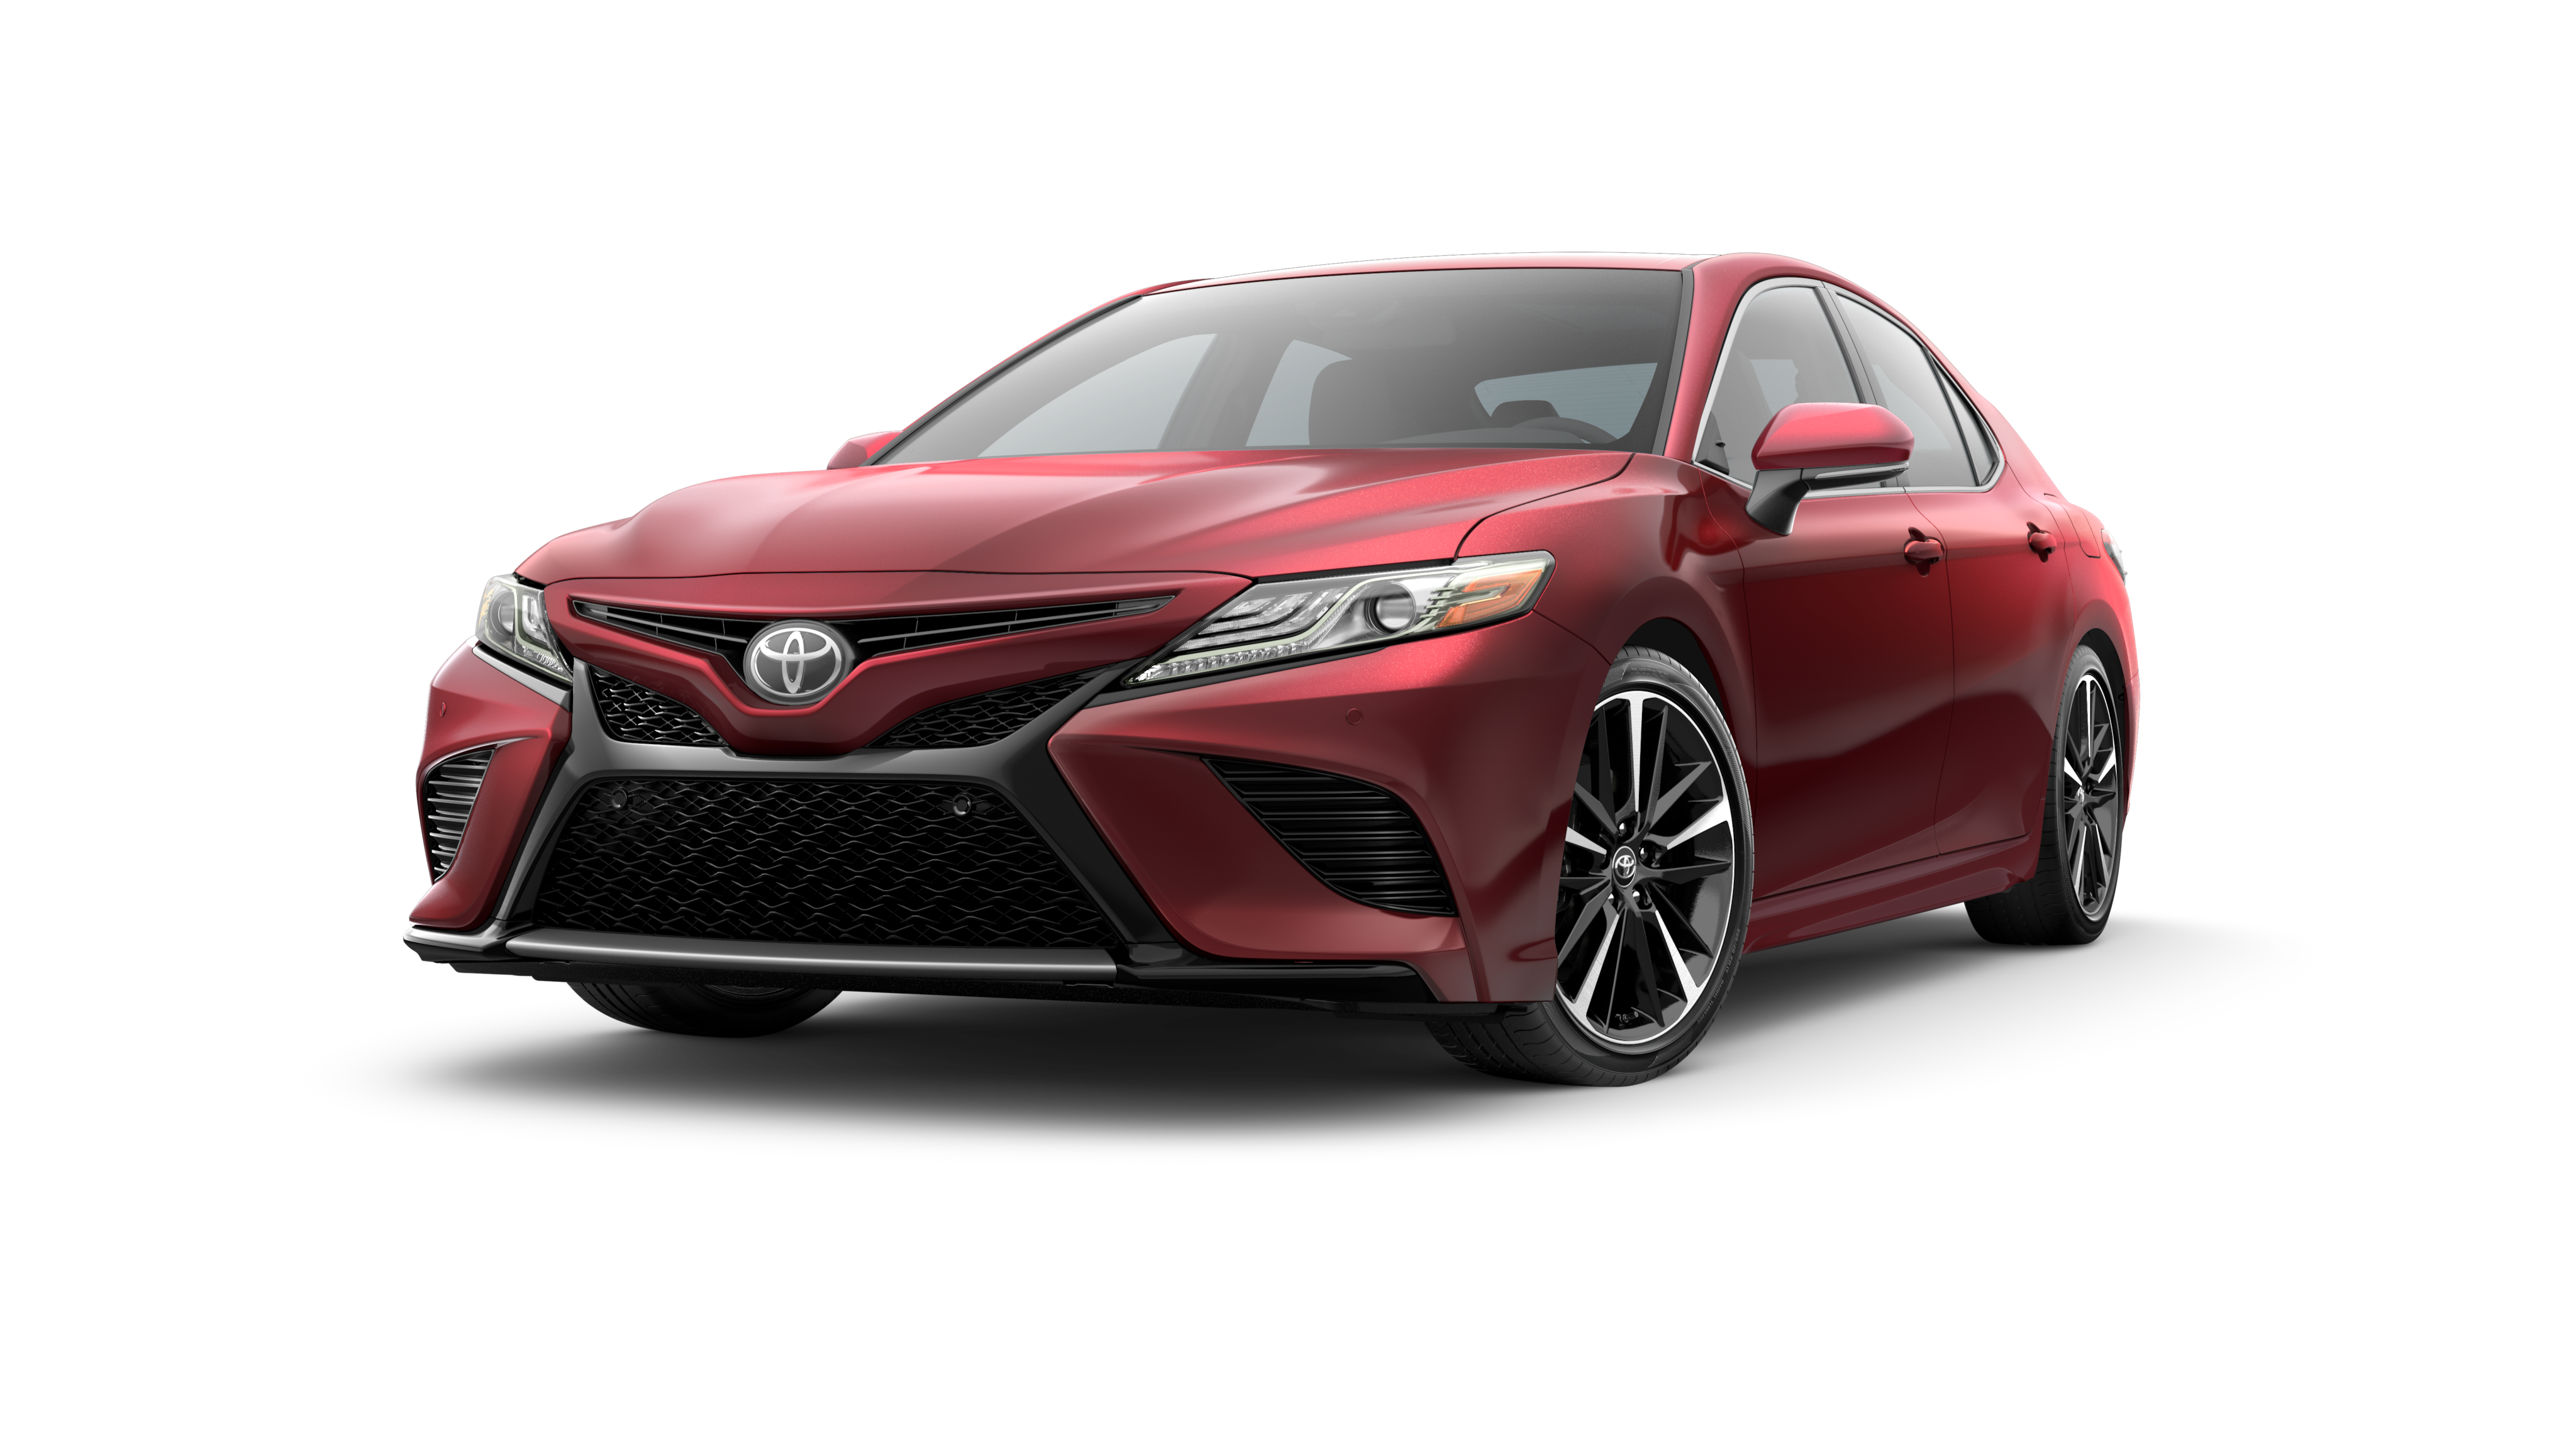 Review of 2019 Toyota Camry Here at Larry H Miller Toyota Lemon Grove near San Diego